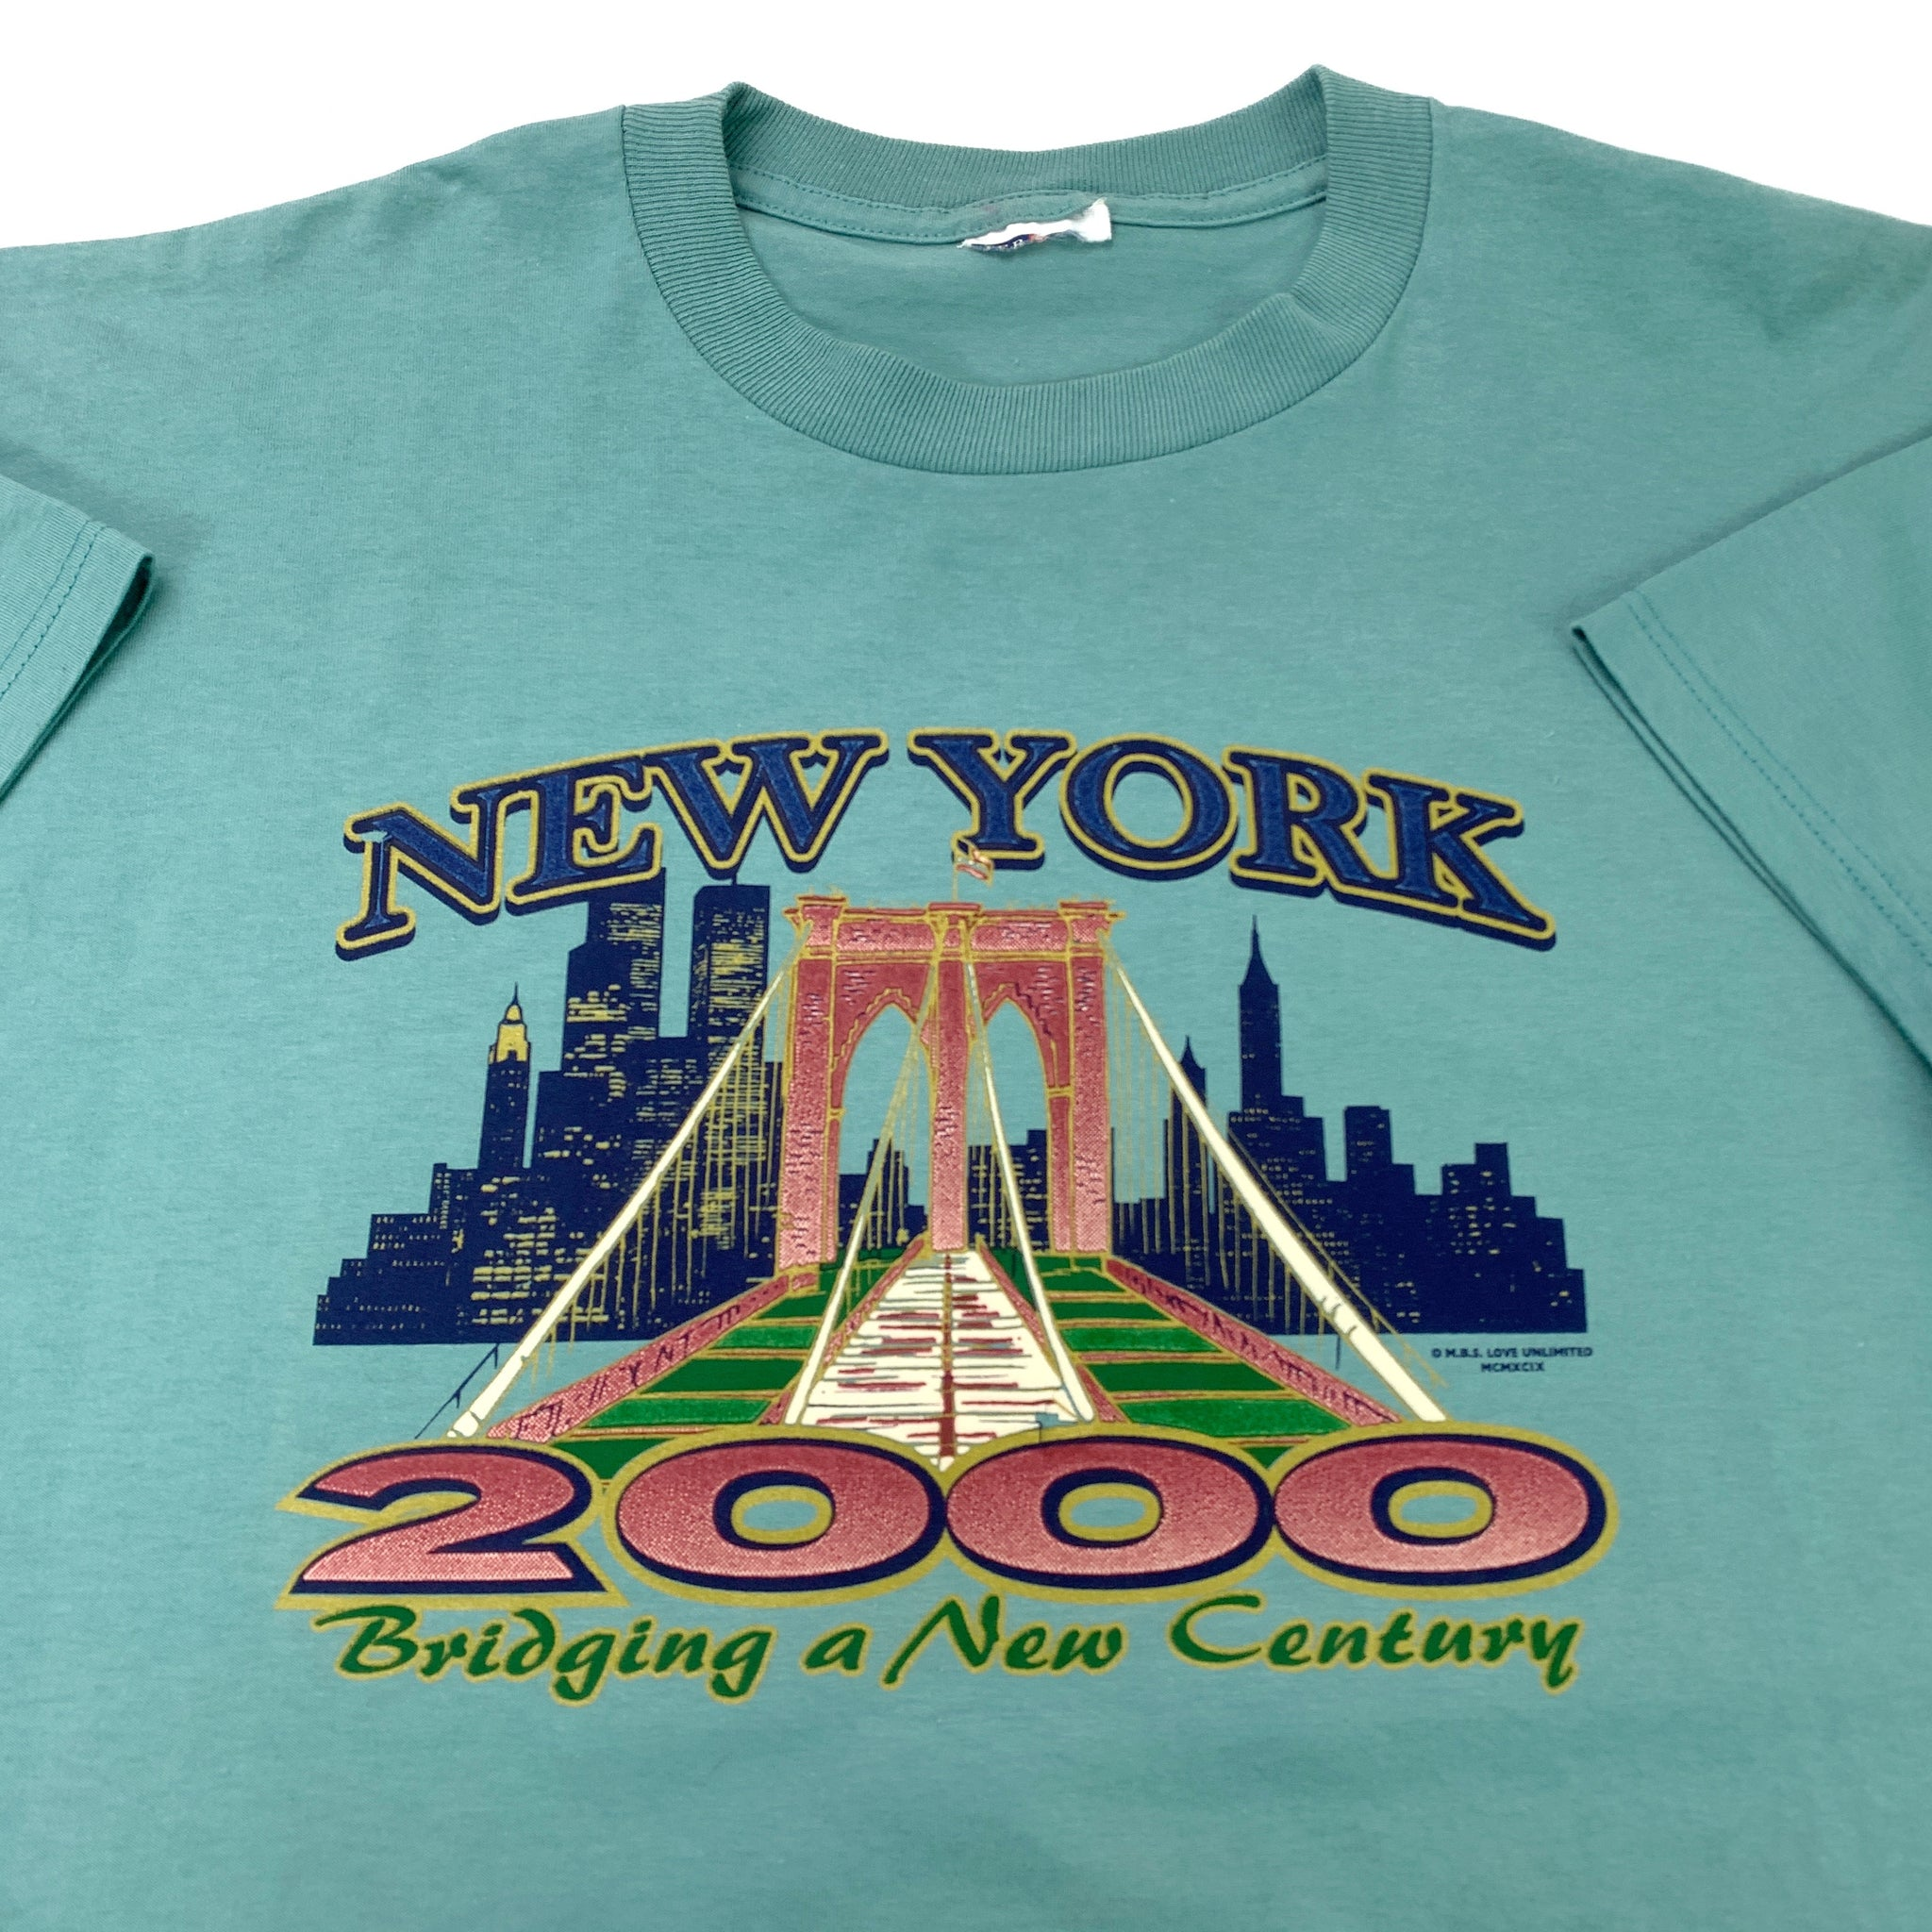 New York 2000 Millenium Tee (Size XL)